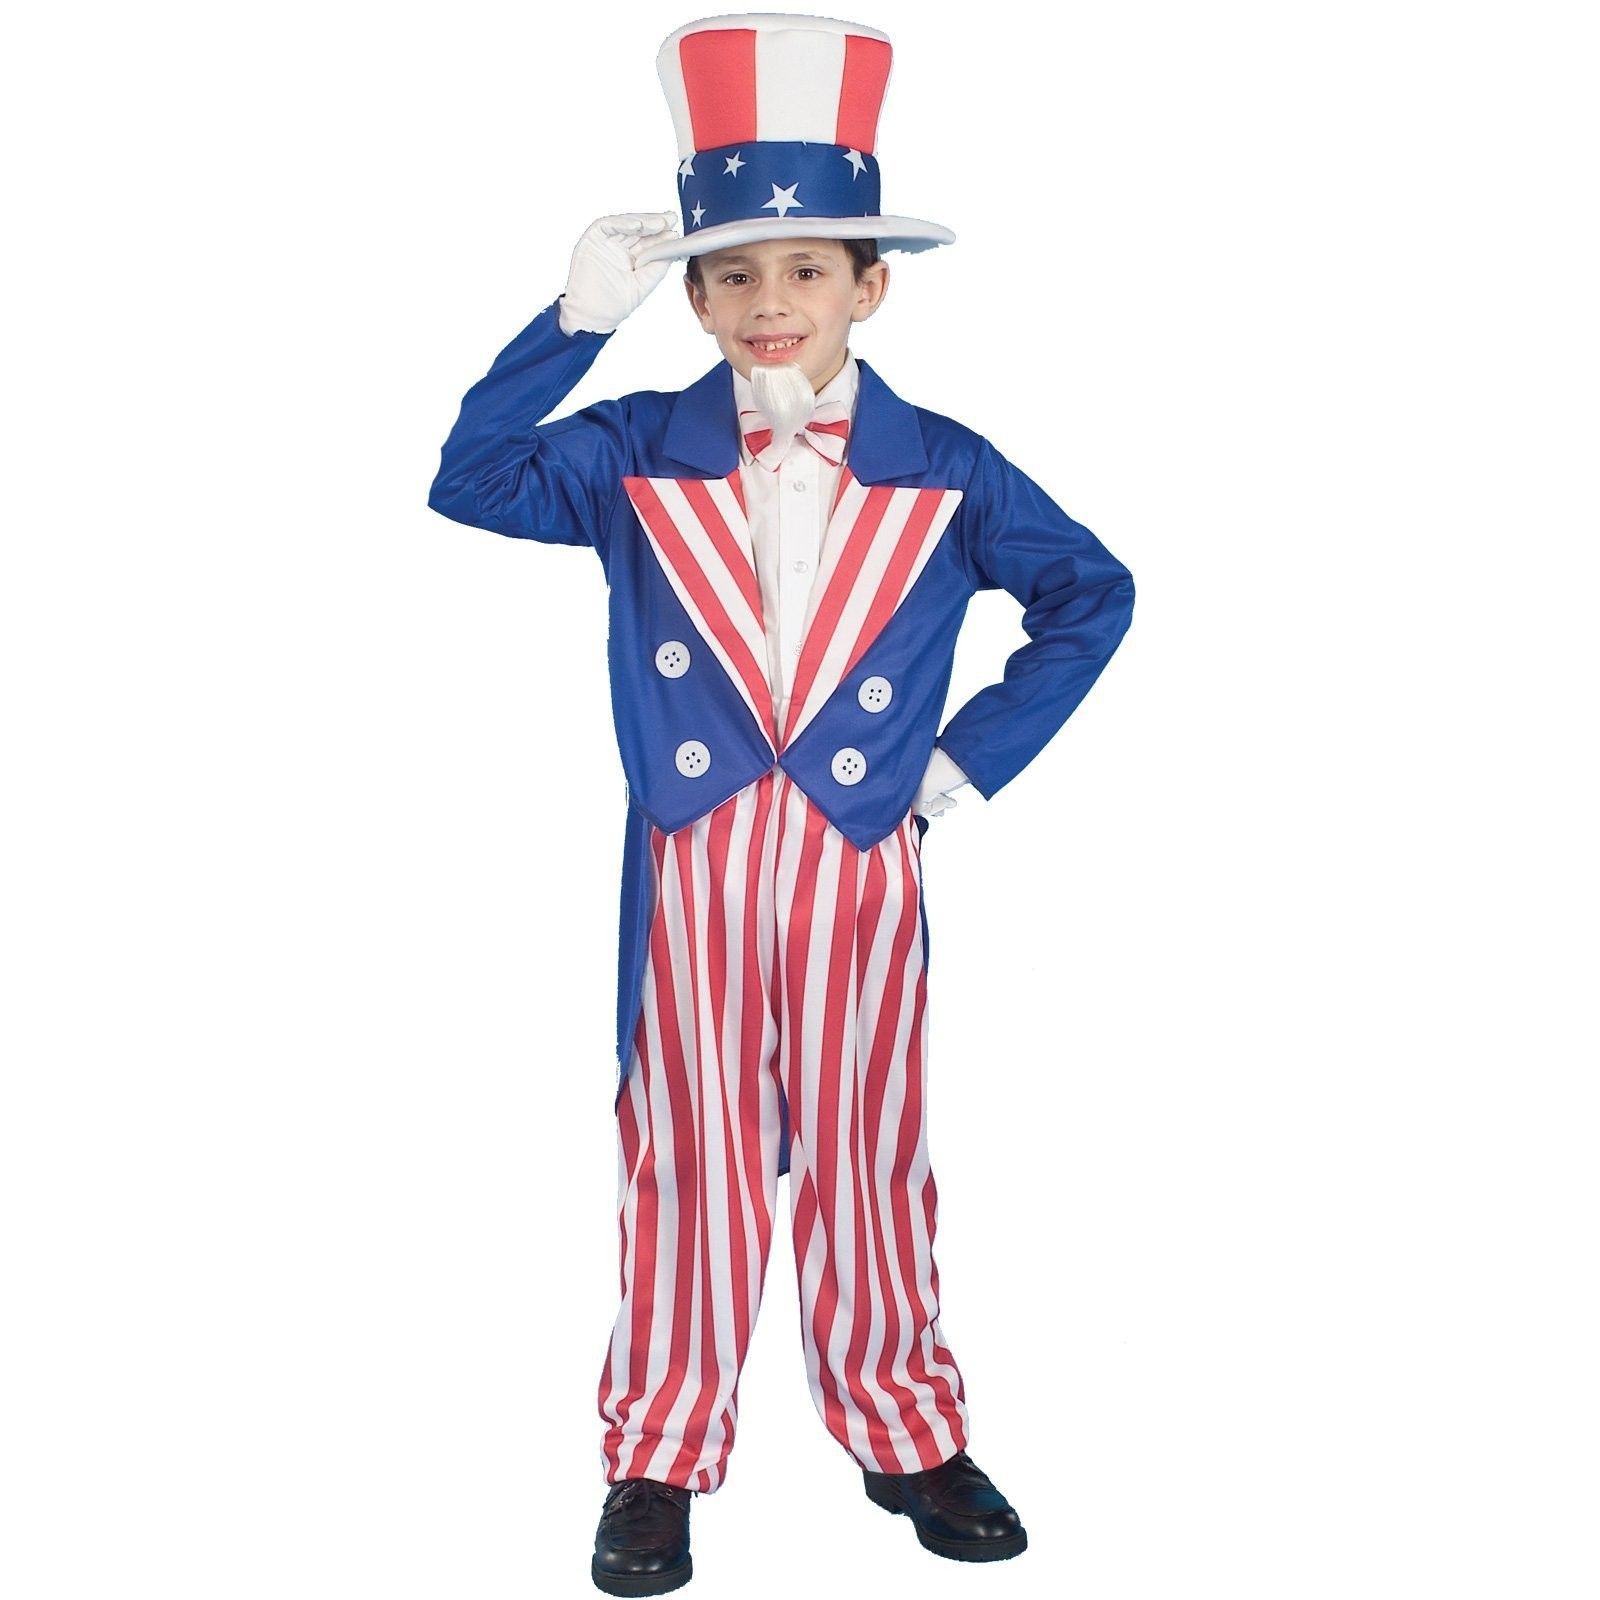 Uncle Sam Child Costume - This patriotic costume includes red, white and blue hat, jacket, bowtie and pants.  White shirt, goatee, gloves and black shoes not included. Medium.